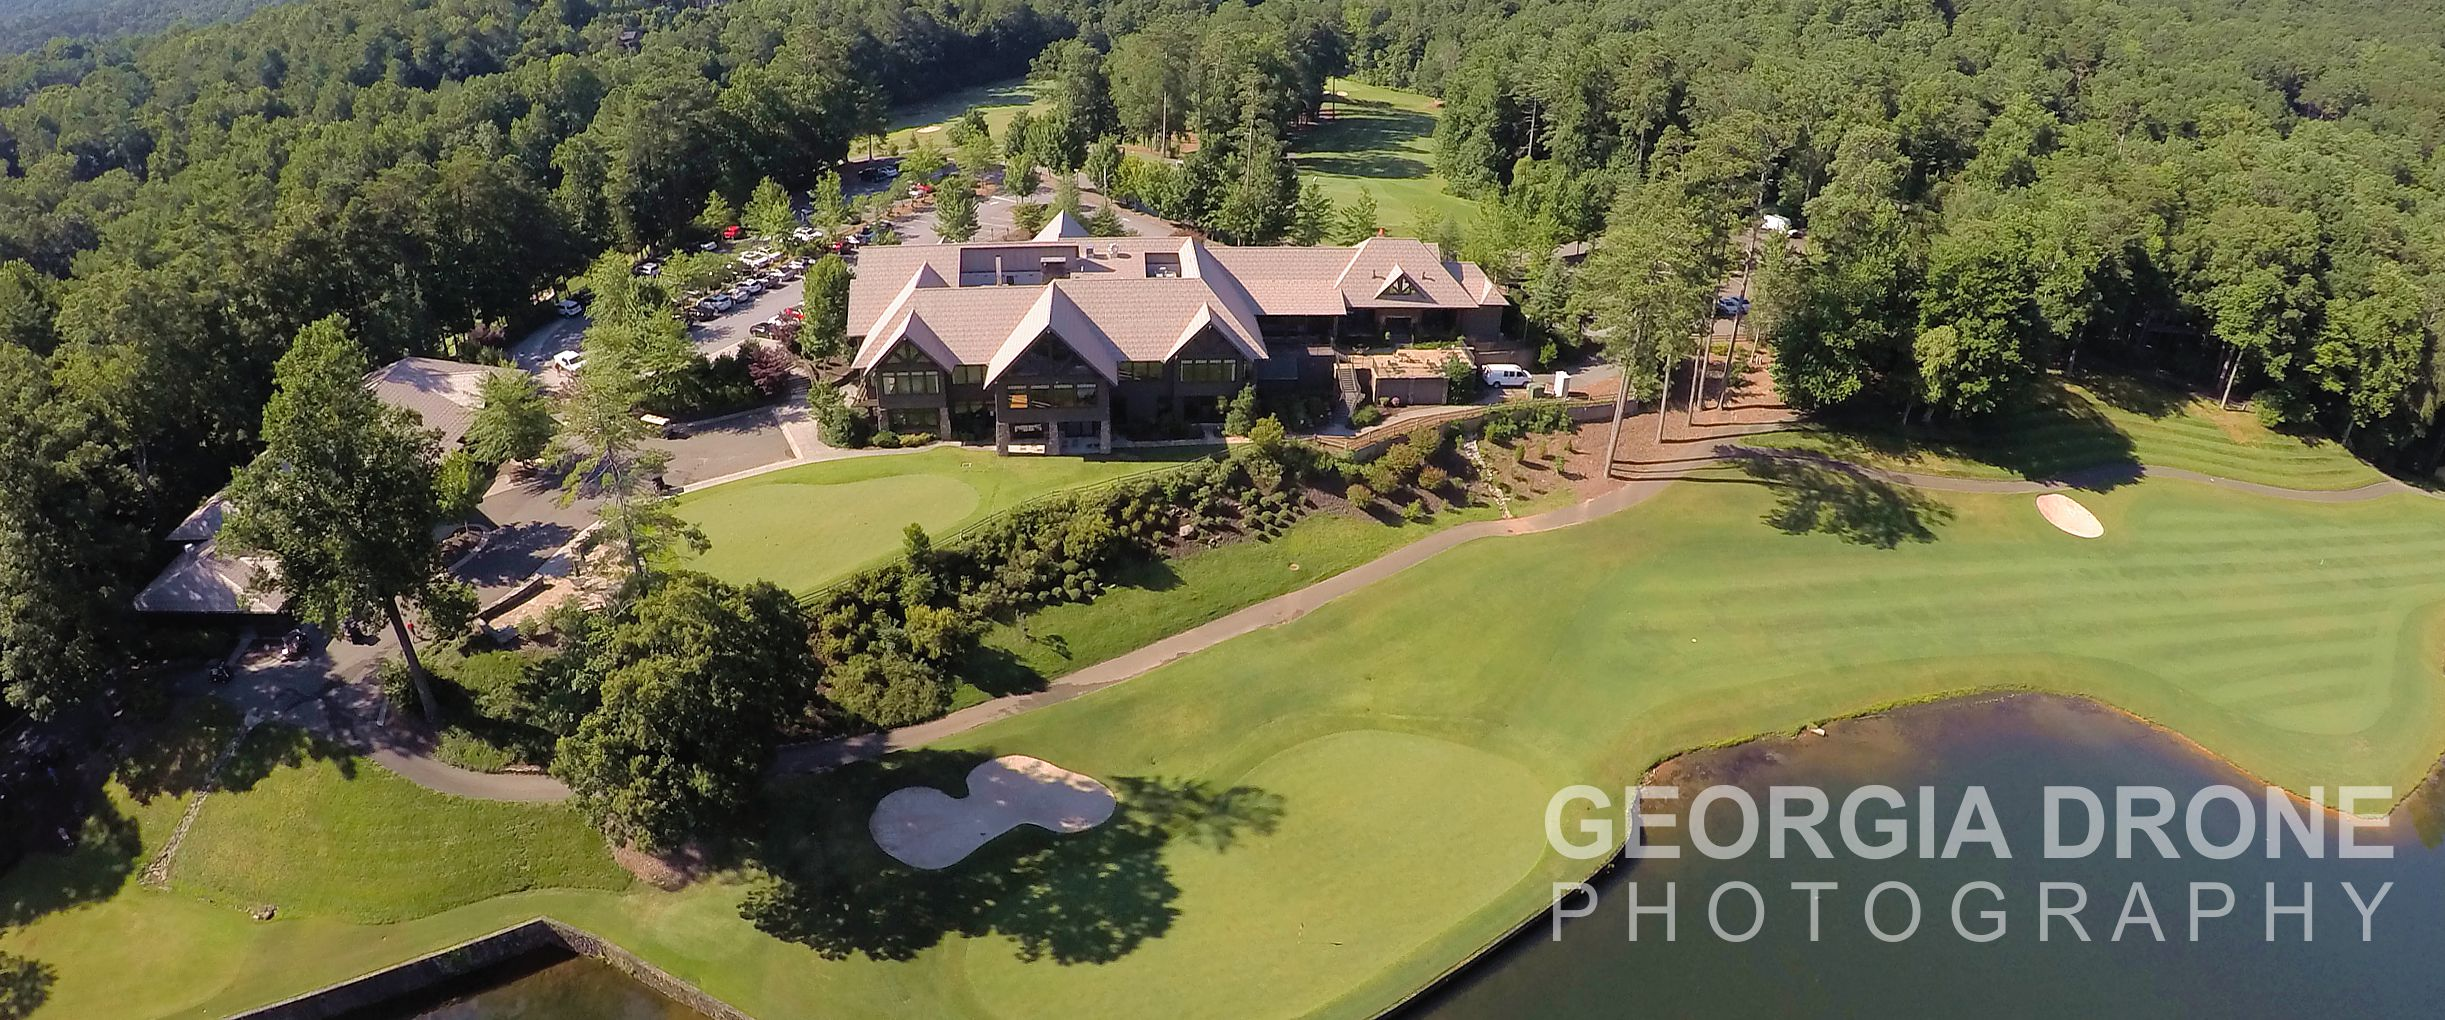 Drone photography of Big Canoe clubhouse on golf course in Jasper, Georgia.